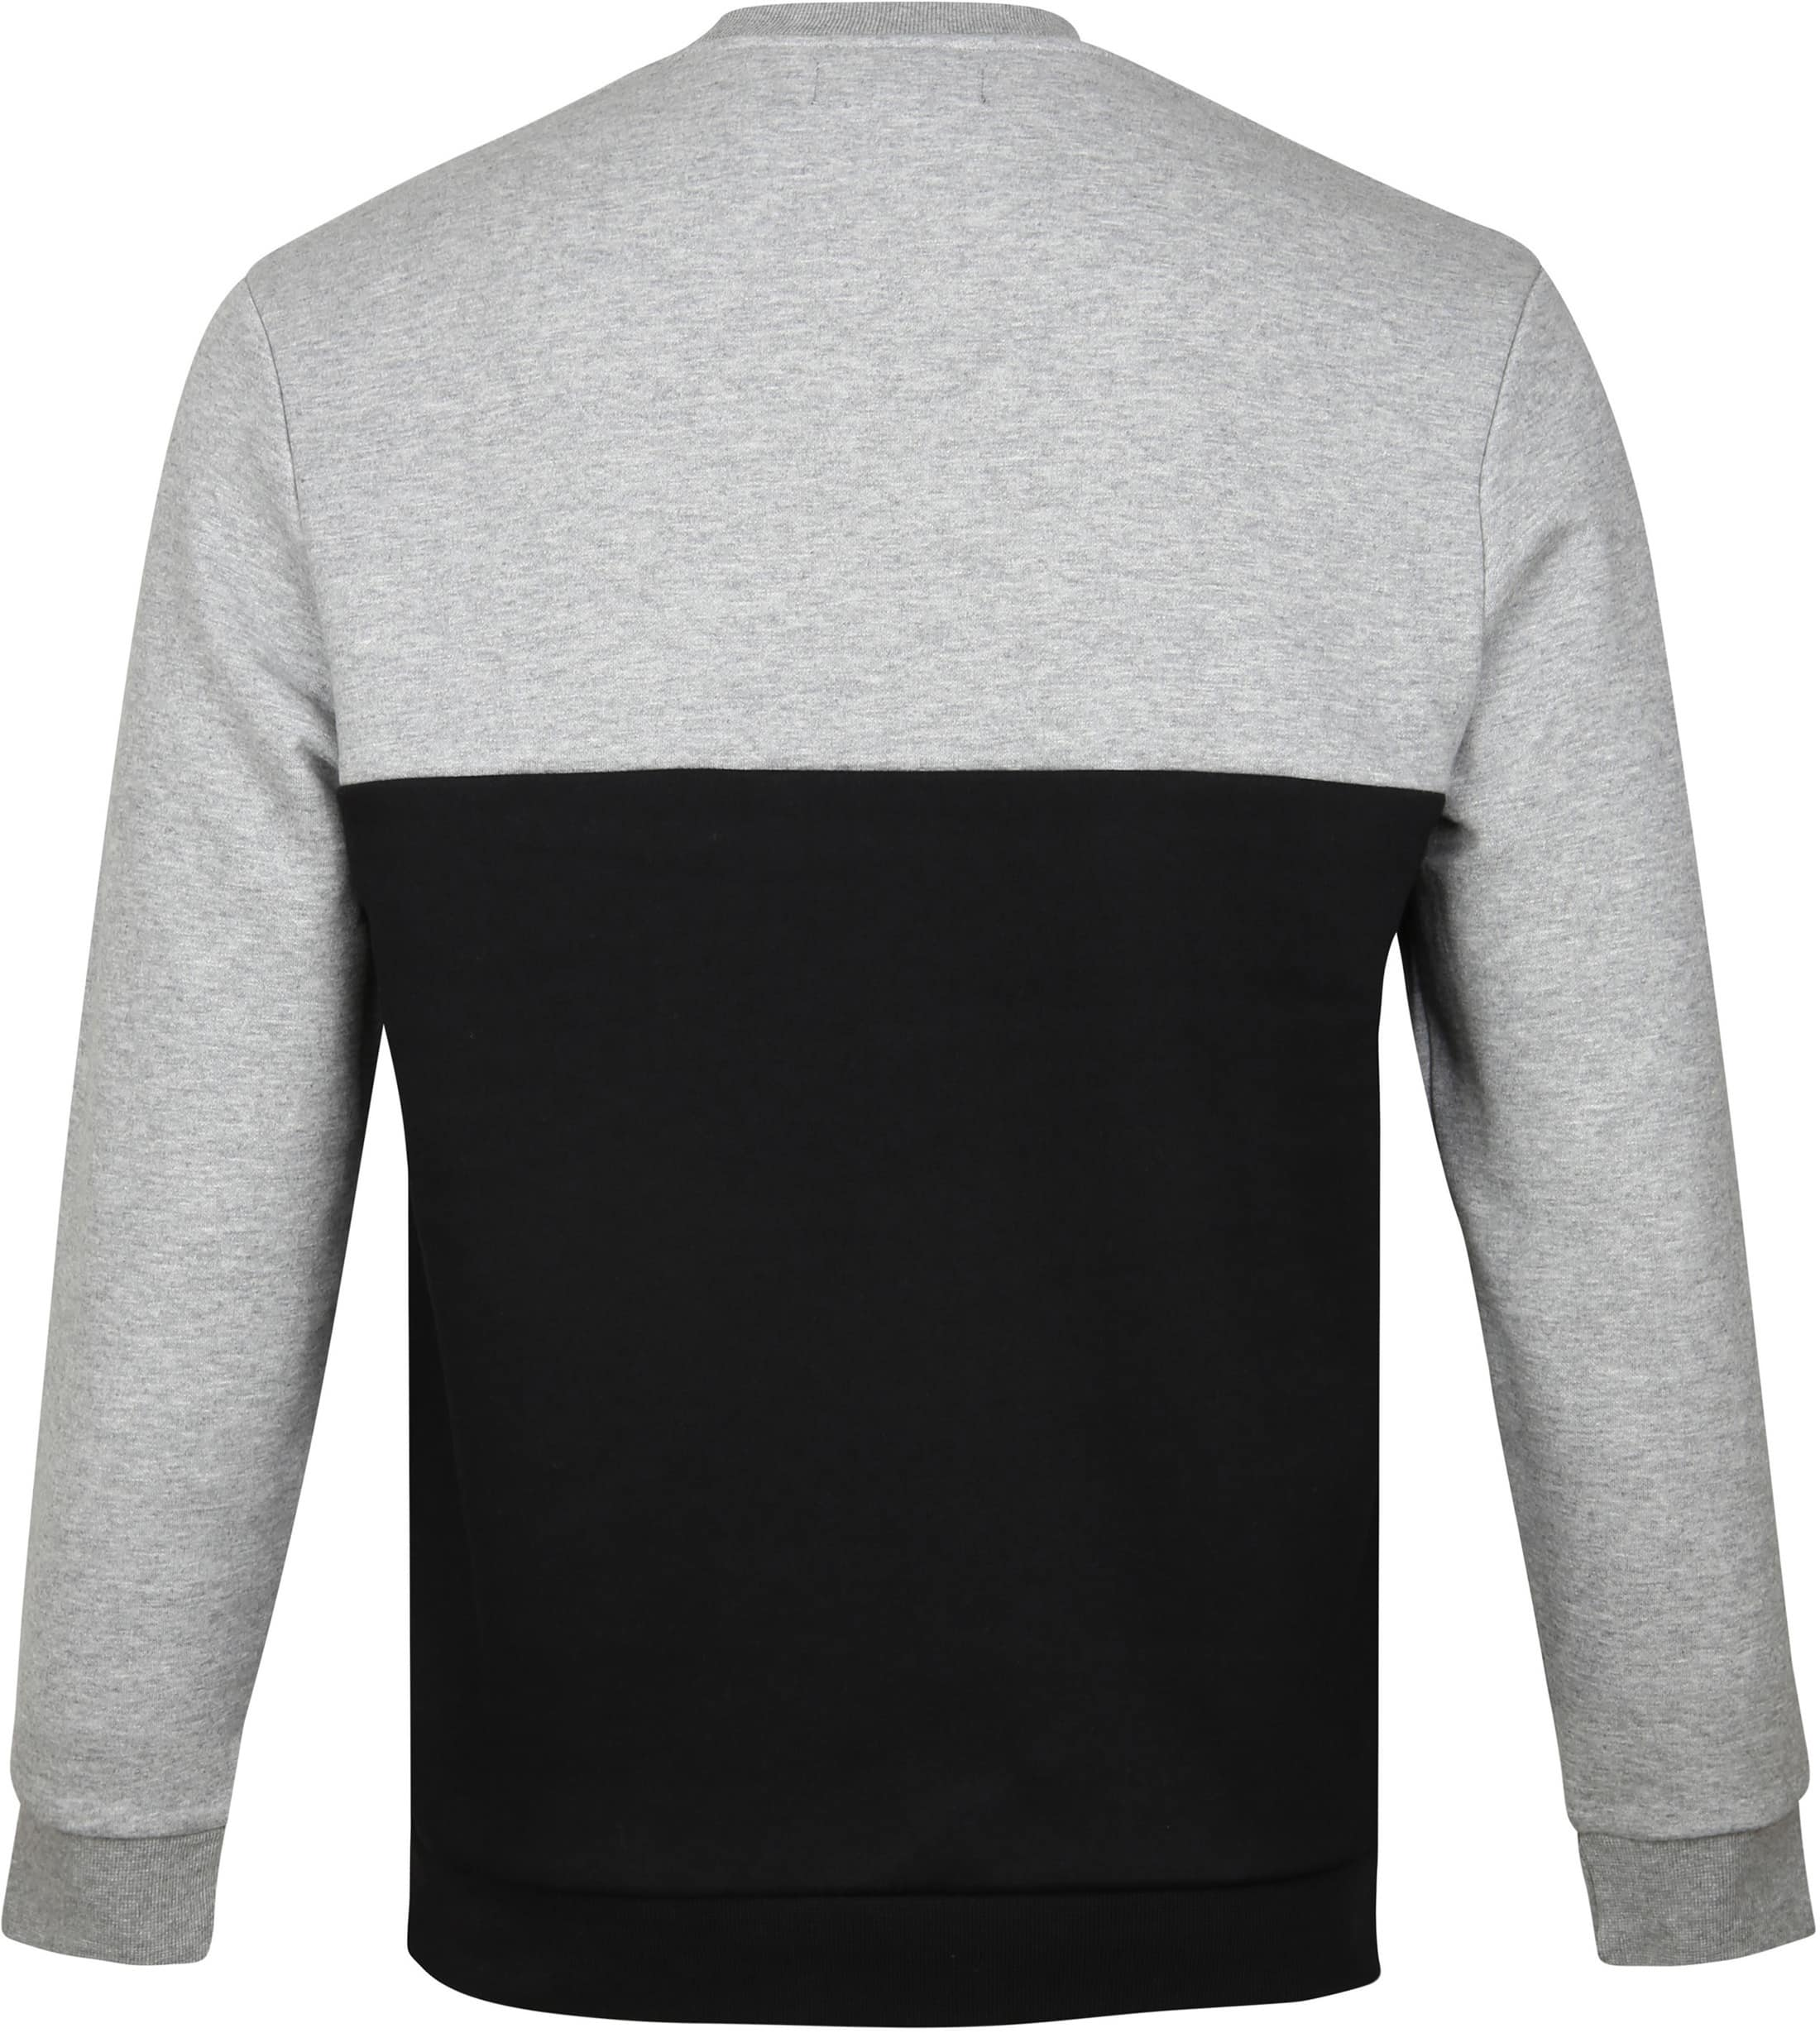 Fred Perry Sweater Grau Schwarz Logo foto 2